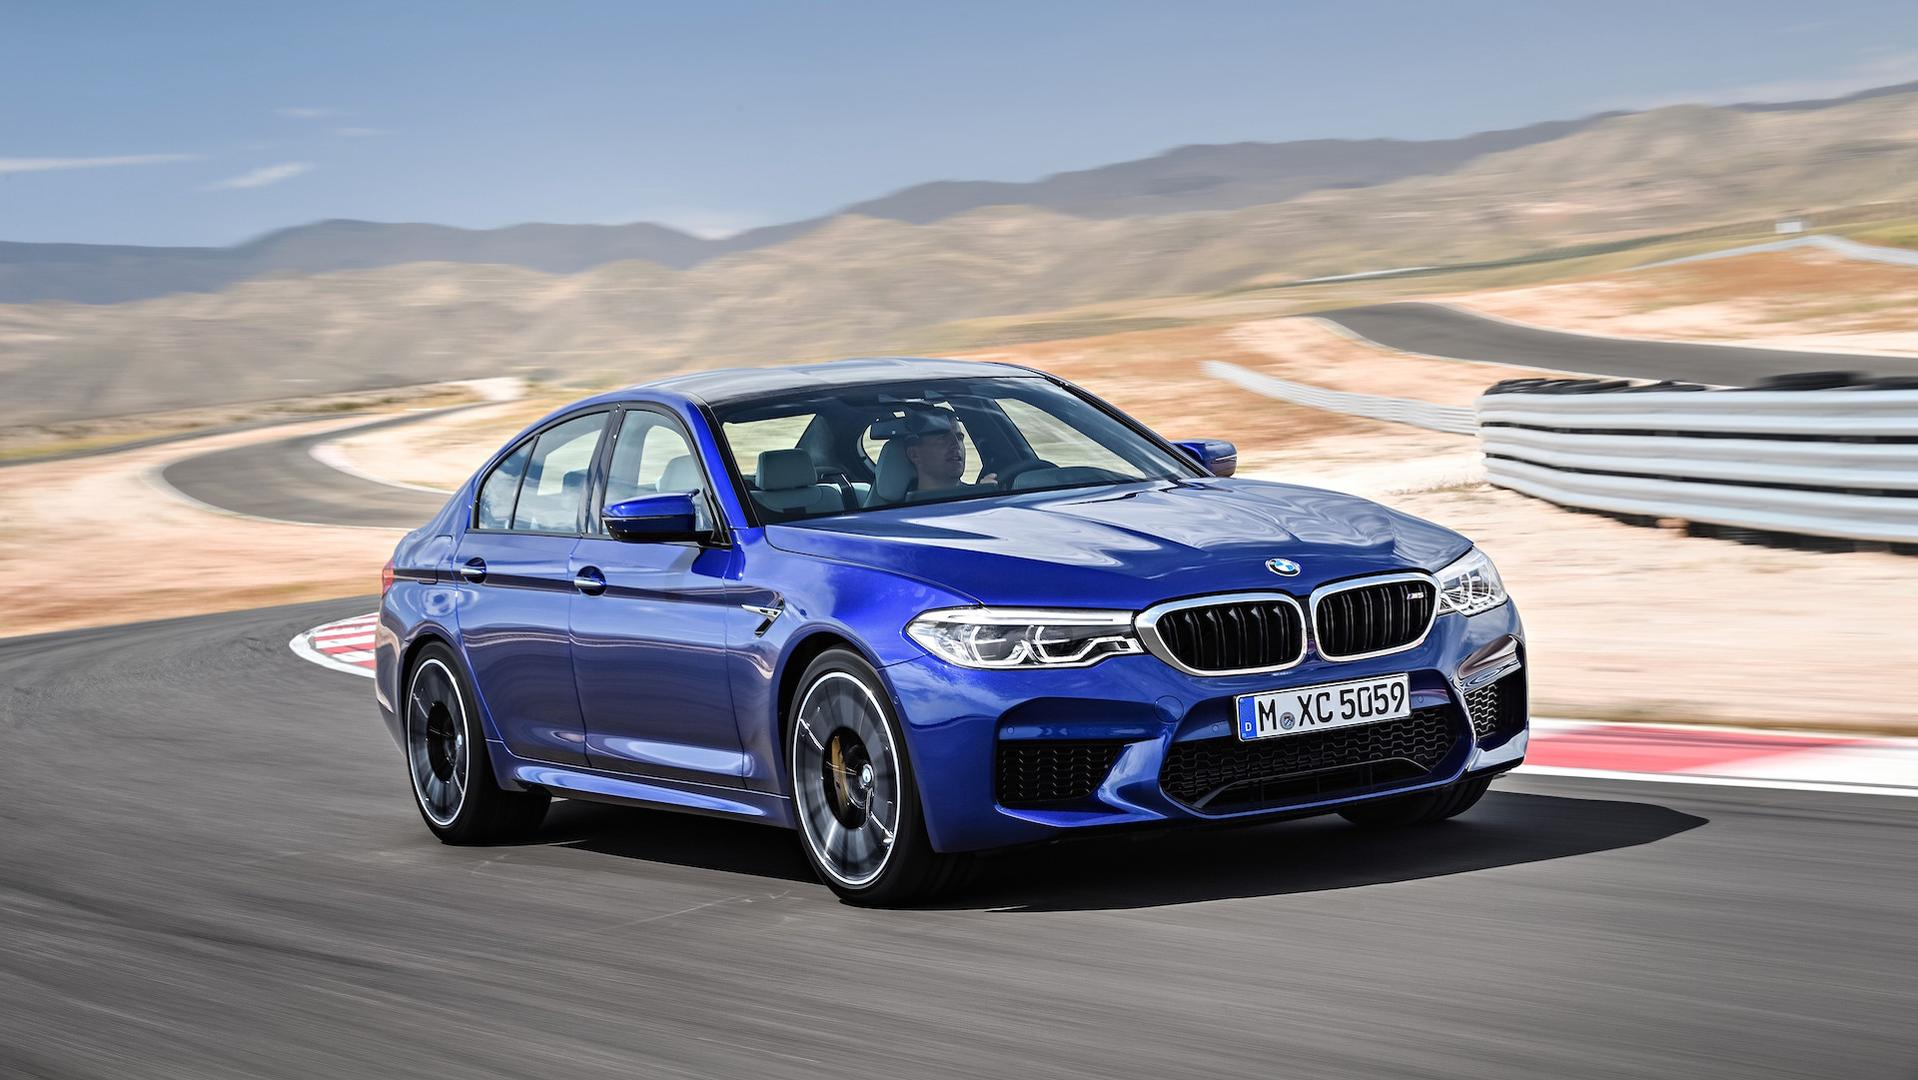 2018 Bmw M5 Reportedly Priced At 102 600 In The U S